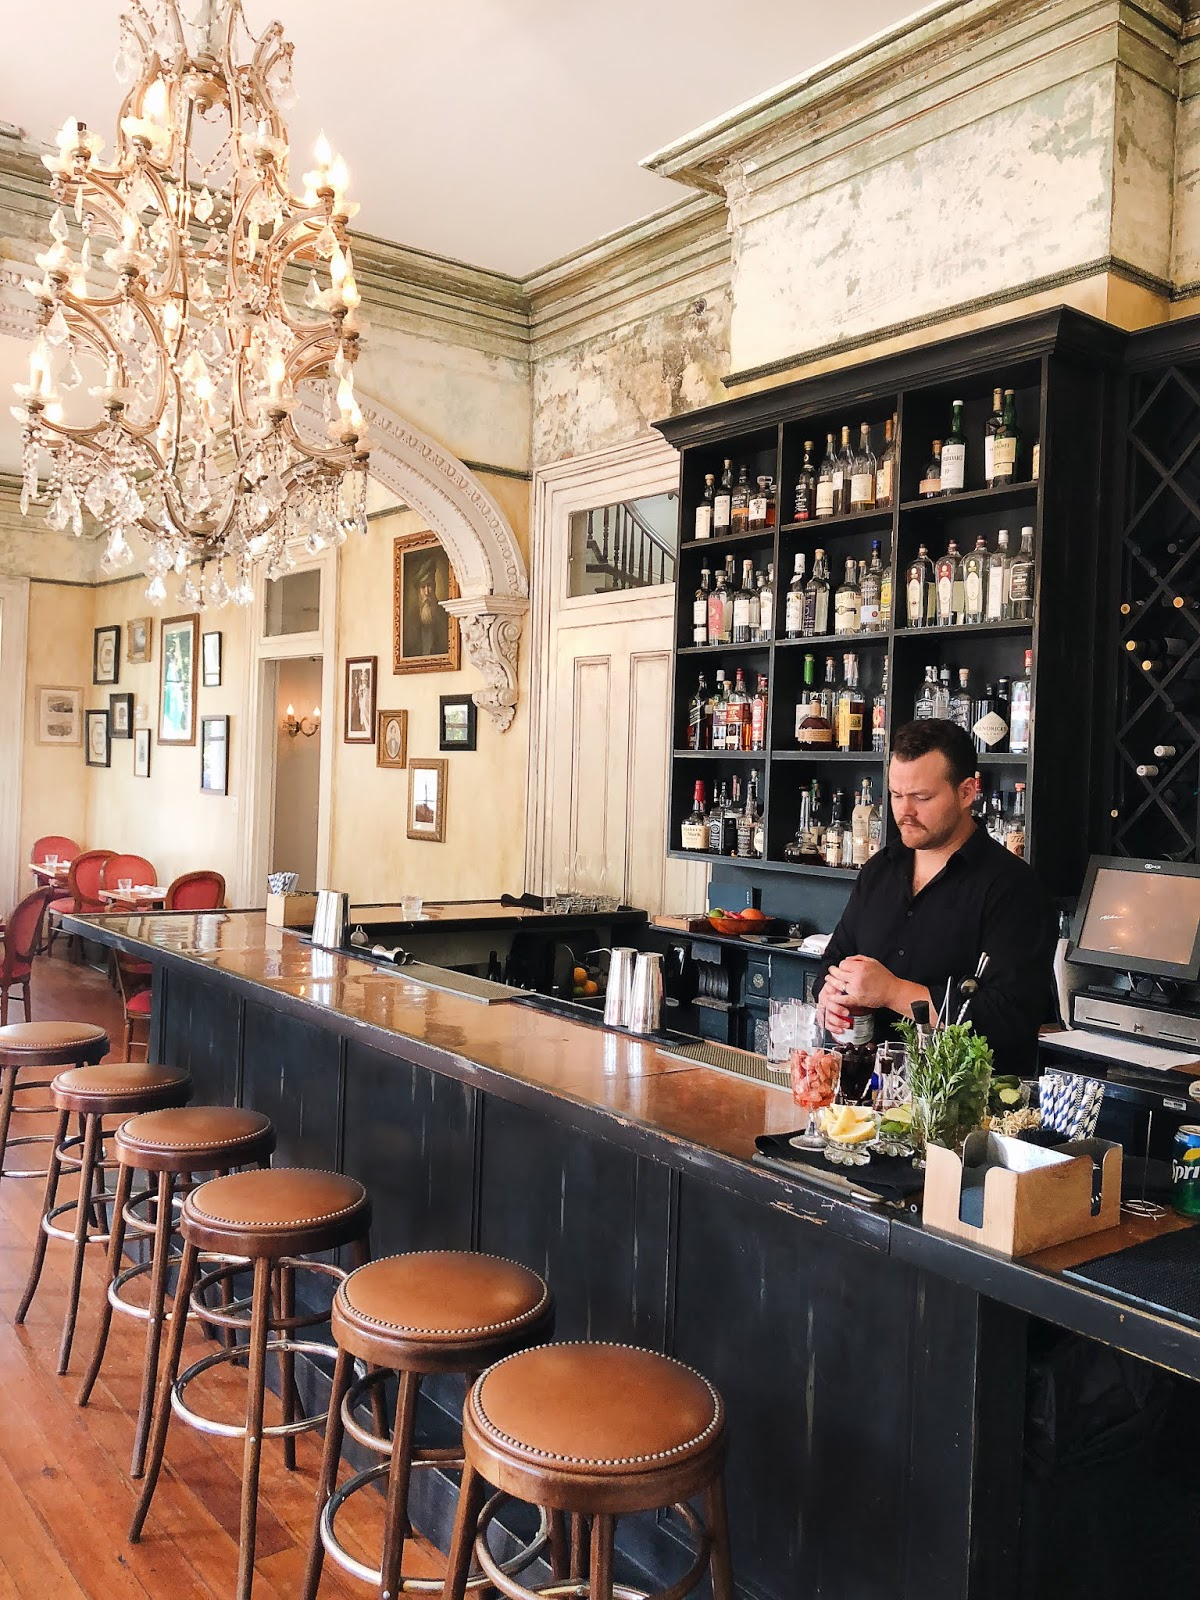 visit new orleans,  new orleans,mardi gras new orleans, mardi gras, cavan, cavan restaurant,  cavan new orleans, cavan restaurant new orleans, new orleans cute restaurants, cute restaurants in new orleans